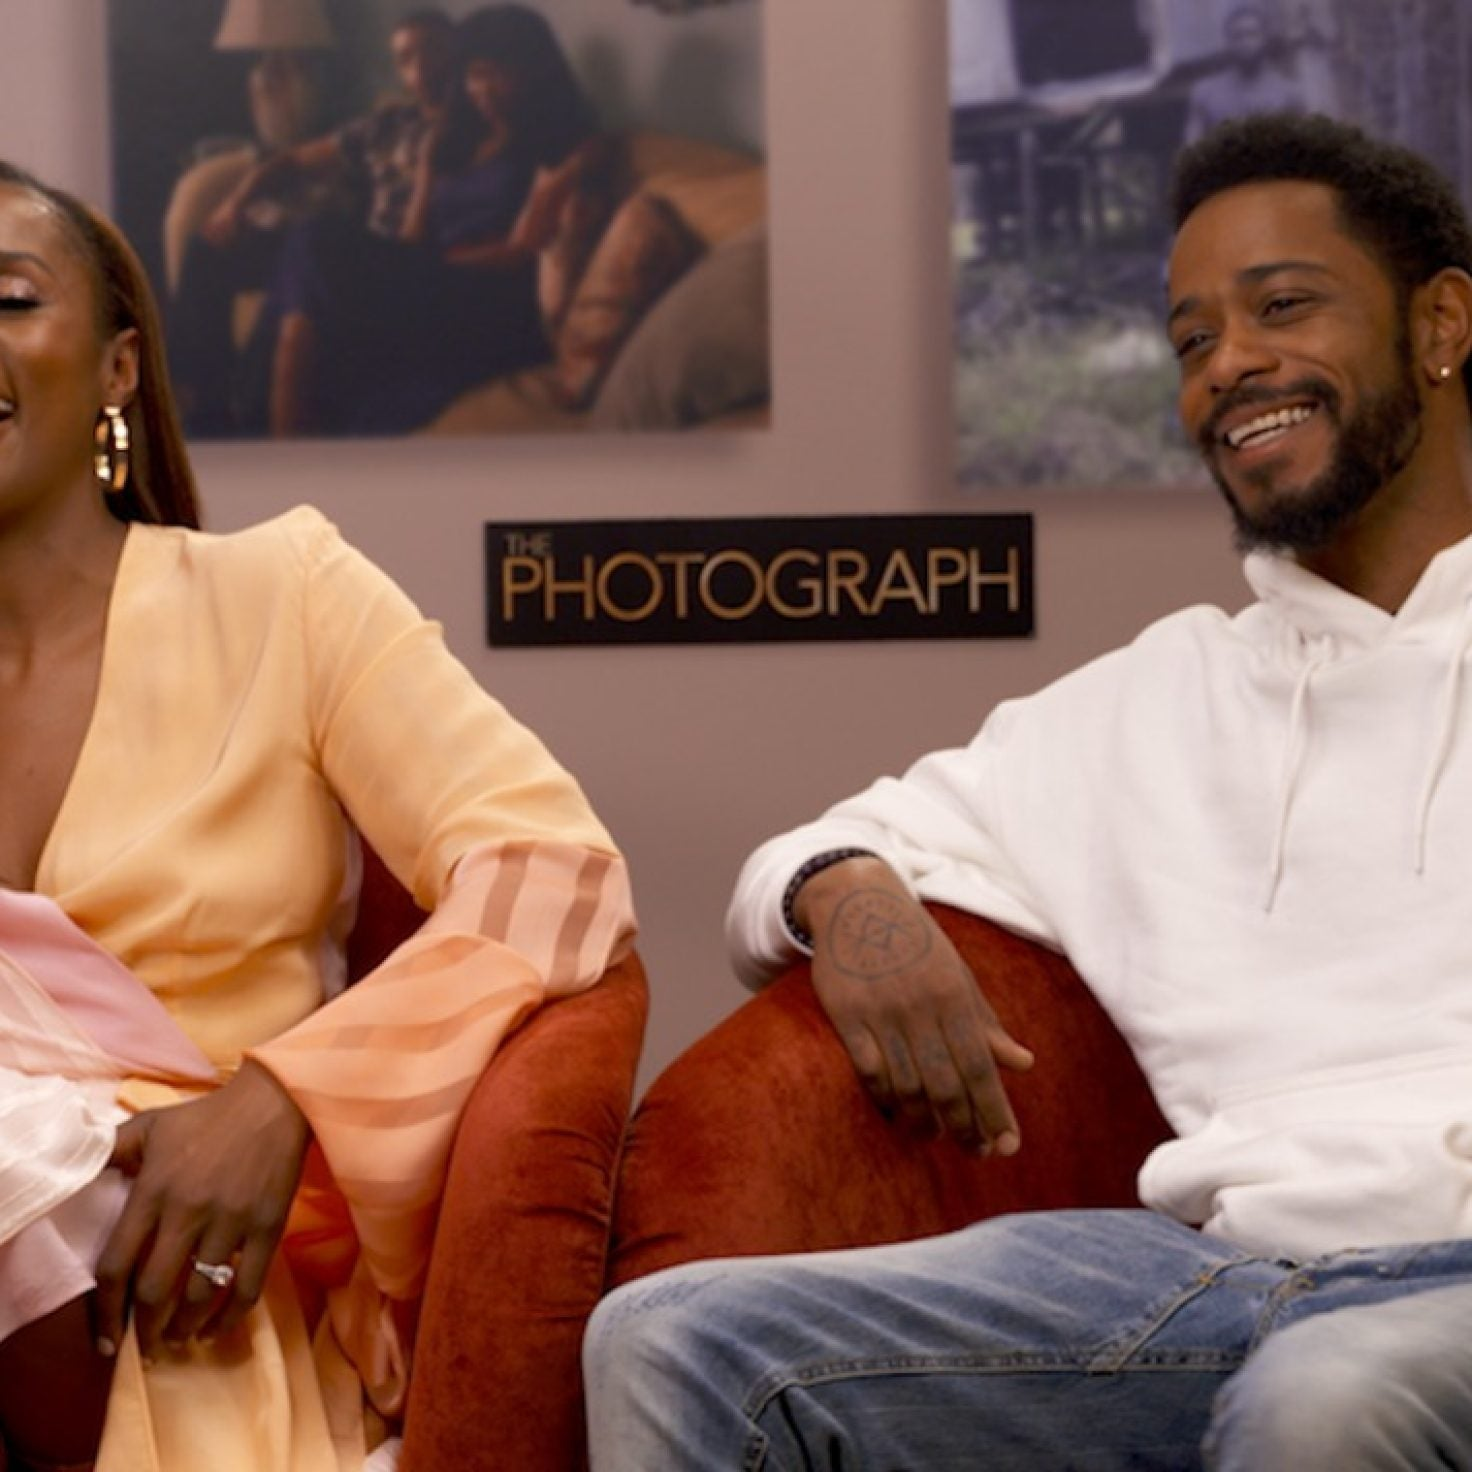 'Photograph' Star Lakeith Stanfield Sounds Off On Repairing Relationship With Journalists